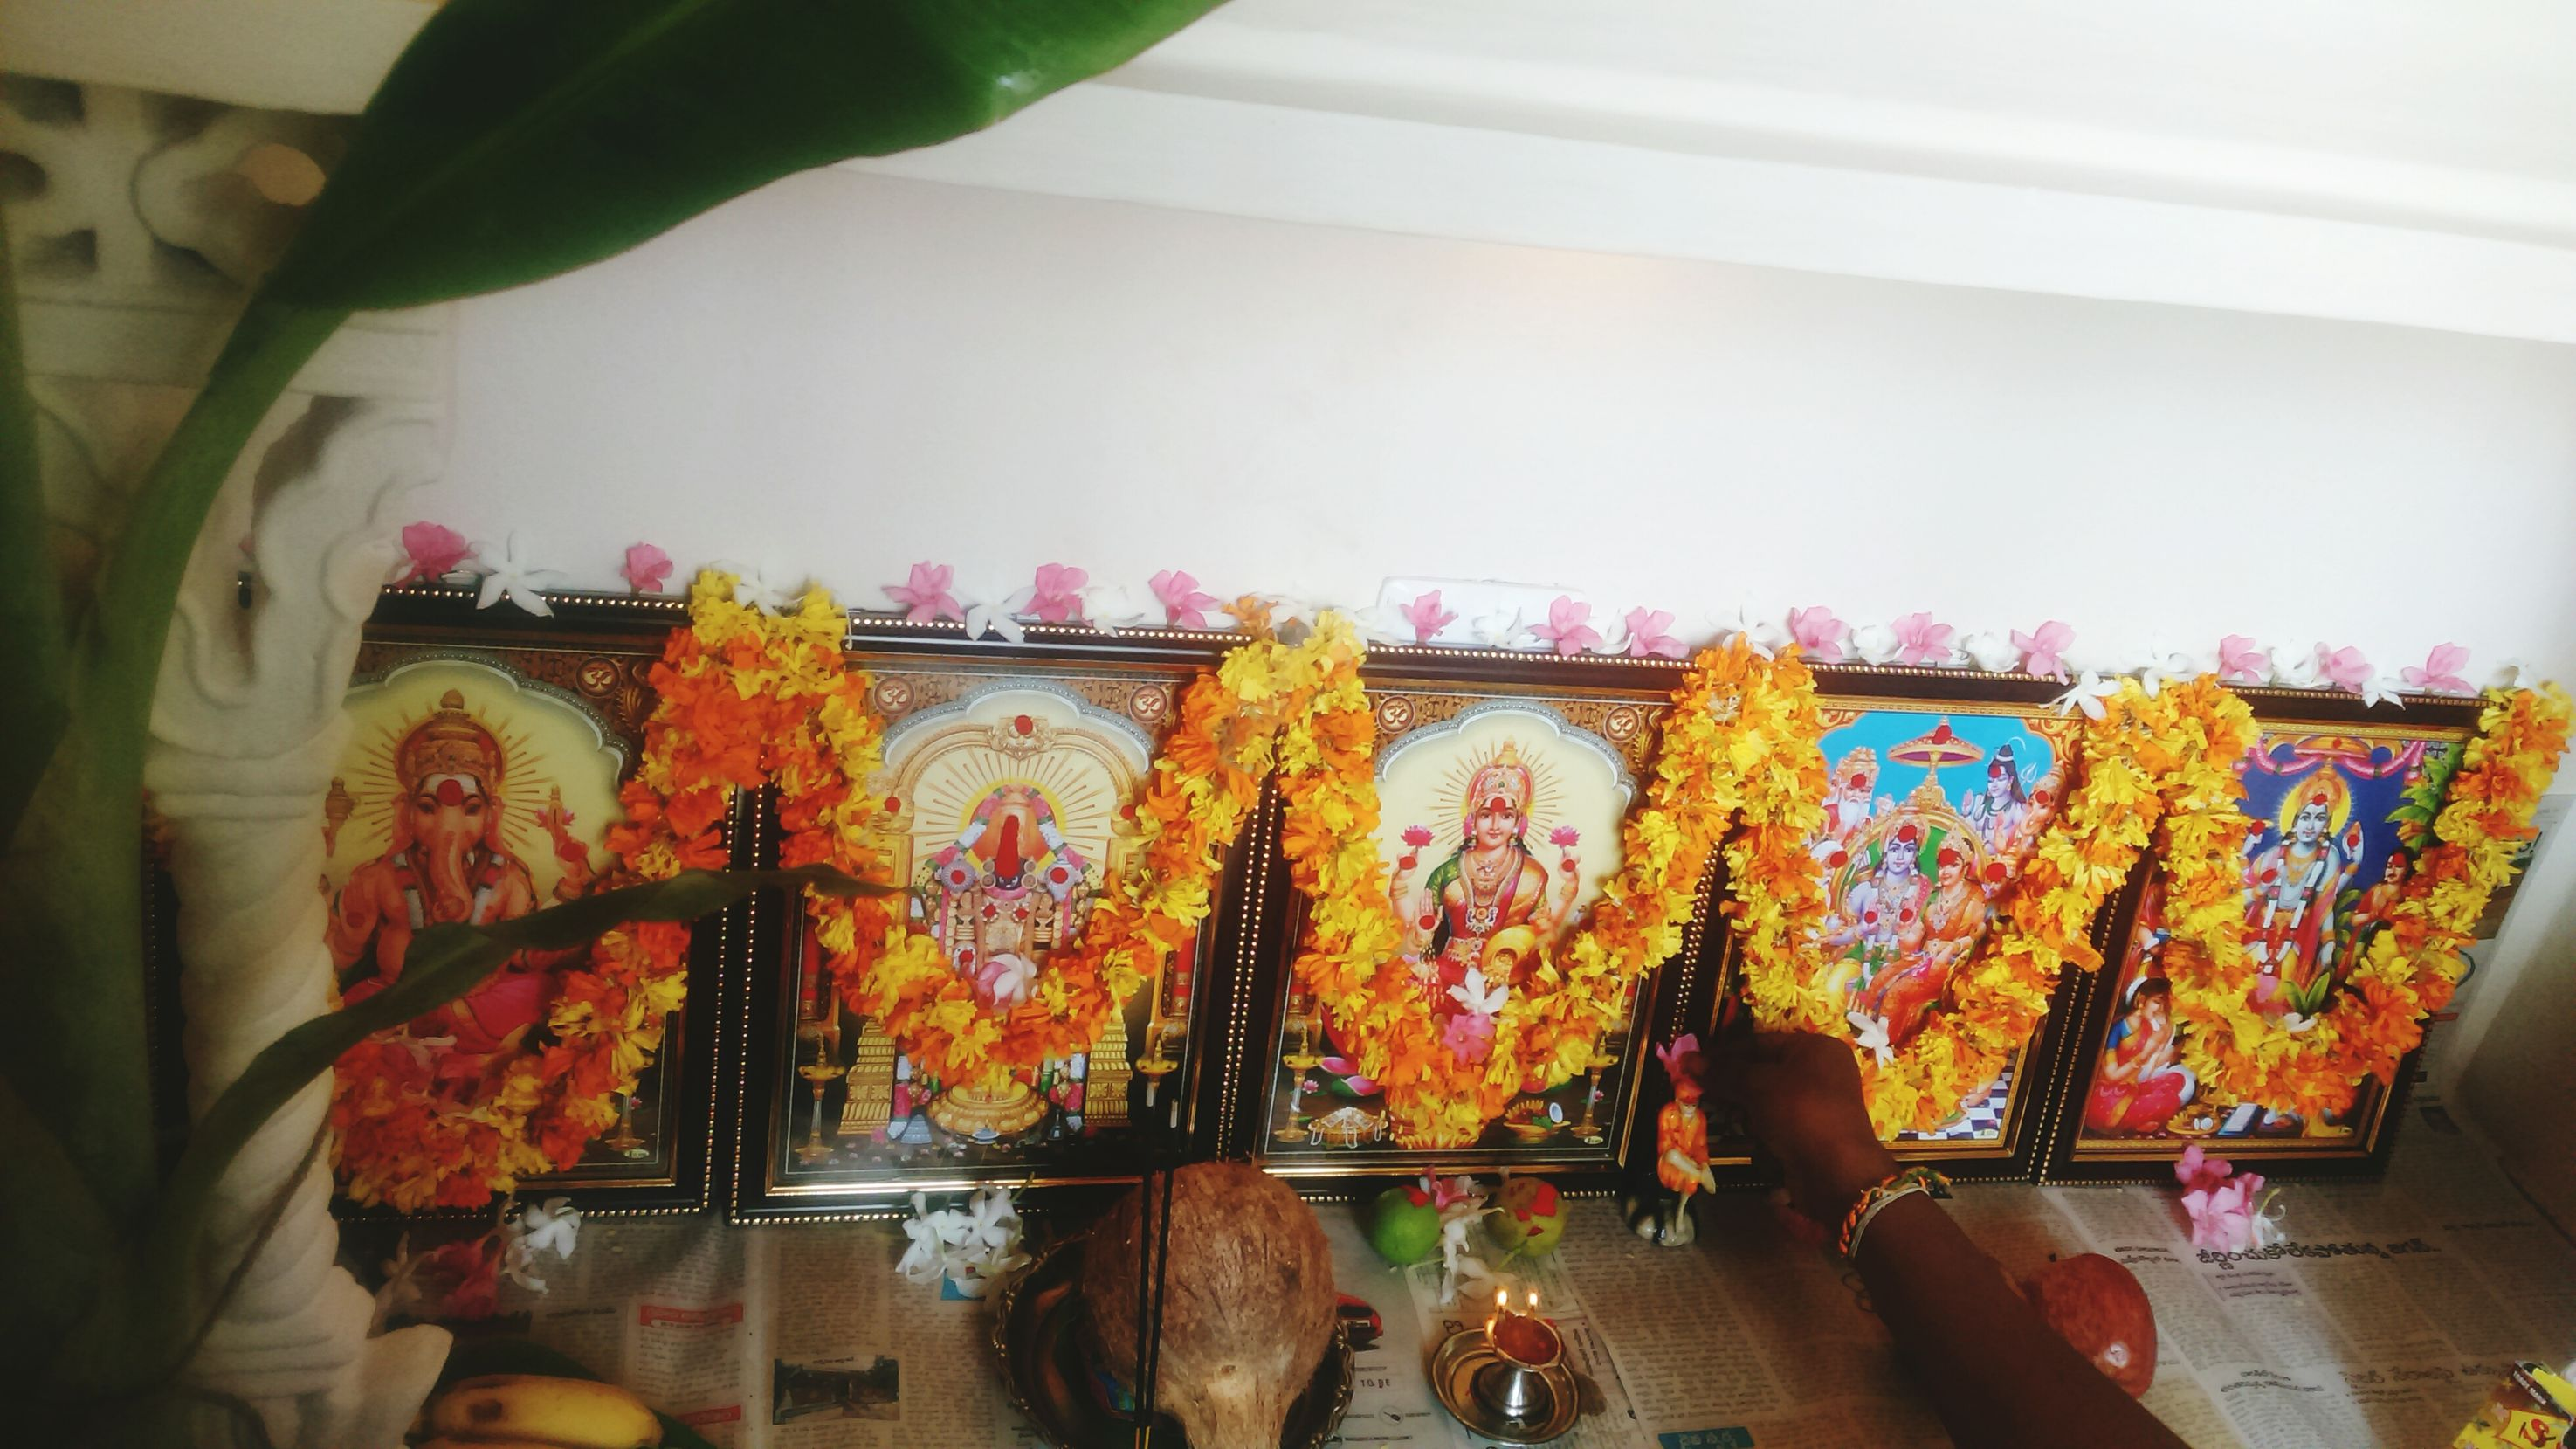 Durgapooja2k15 Nellore Morning Tradition Worshiping God Divine